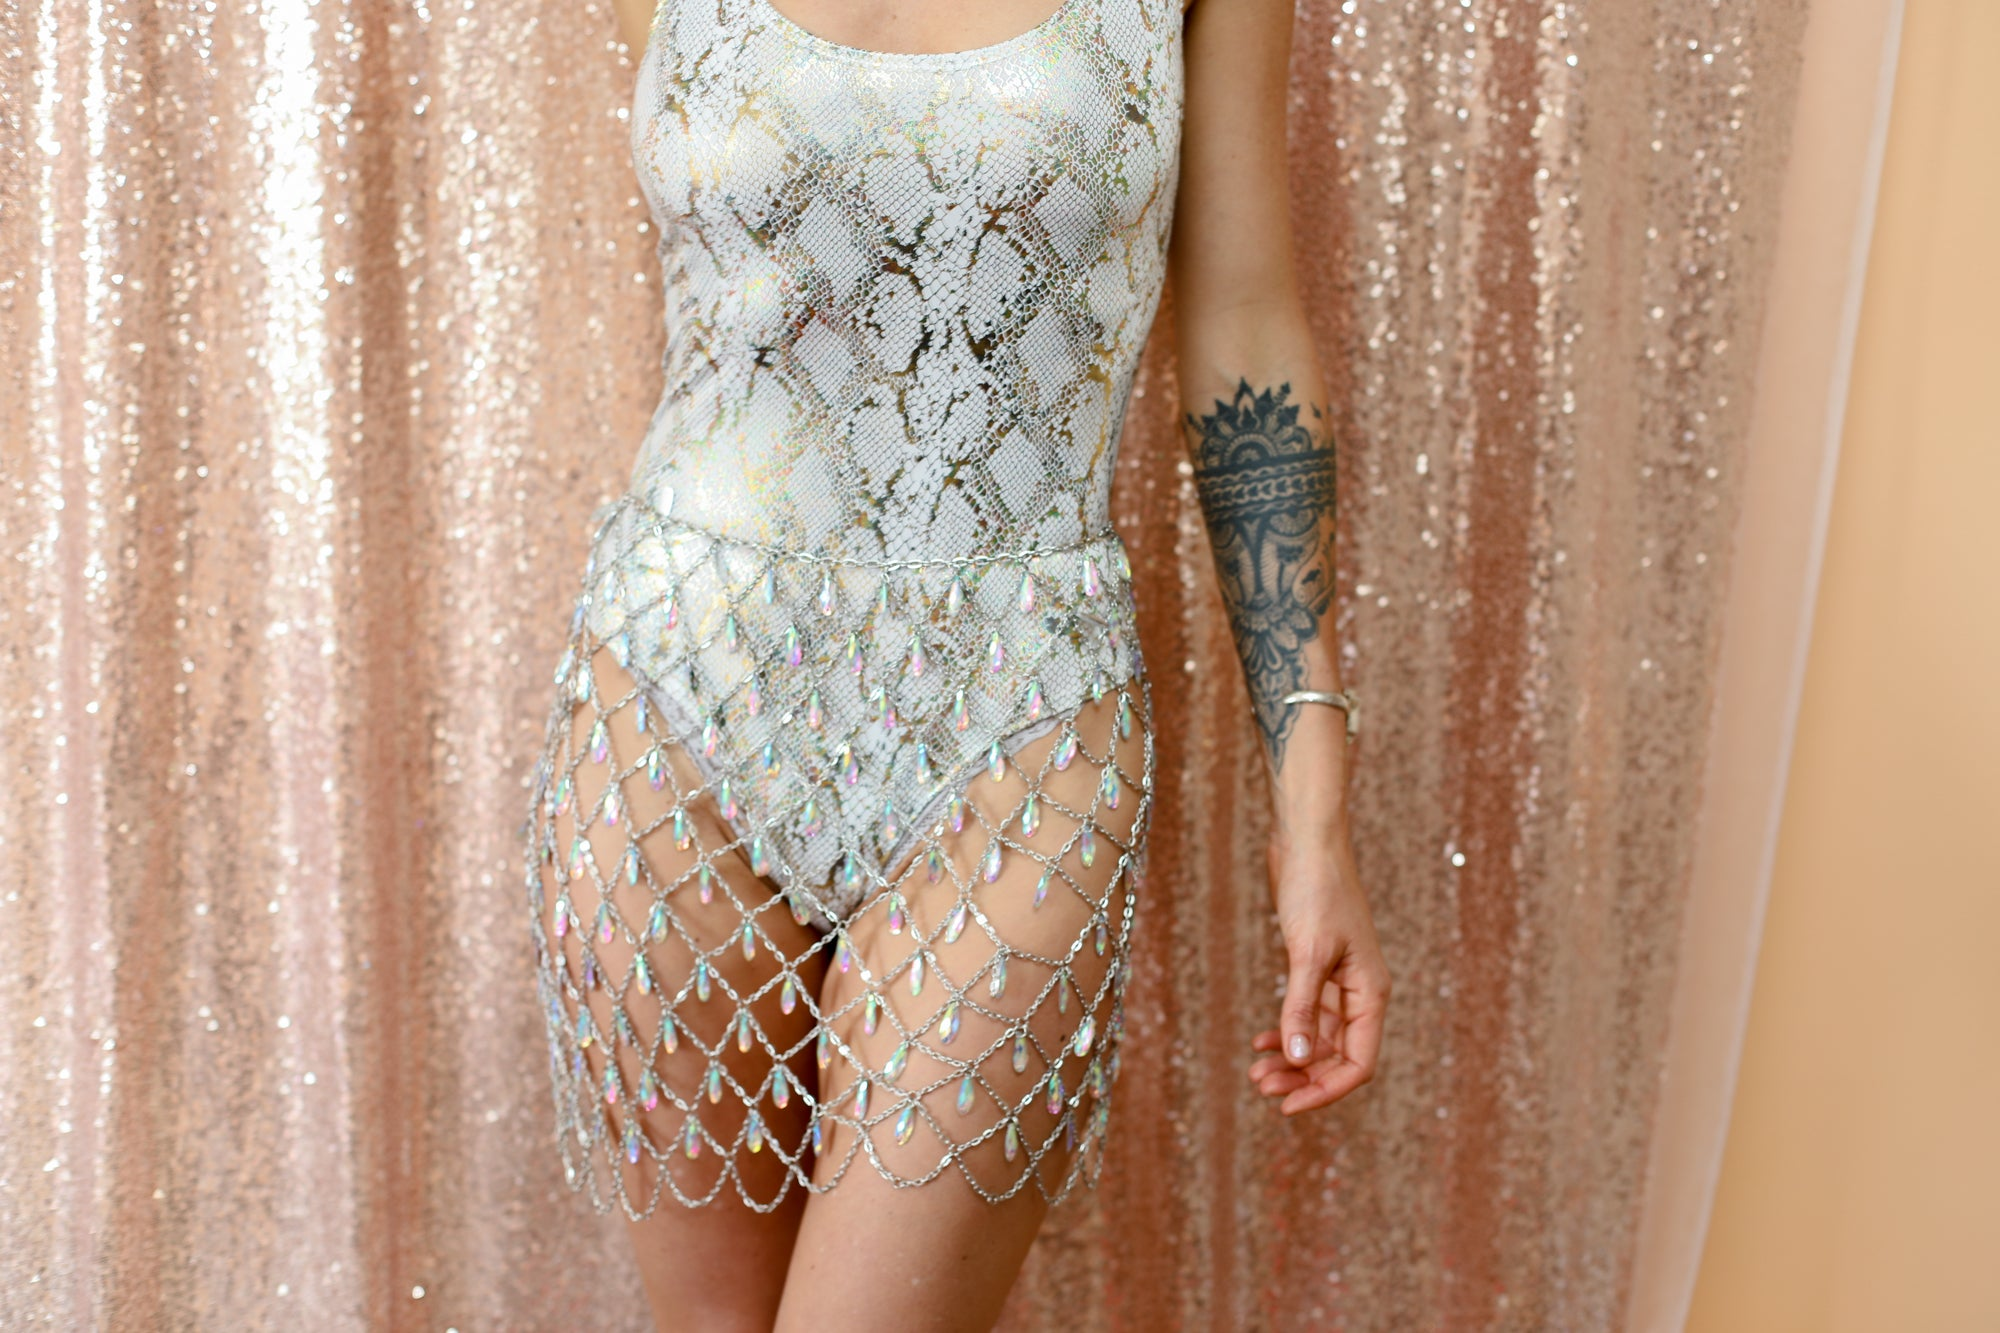 White Metallic Snakeskin Bodysuit; Gold and Silver Metallic Bodysuit; White Festival Bodysuit